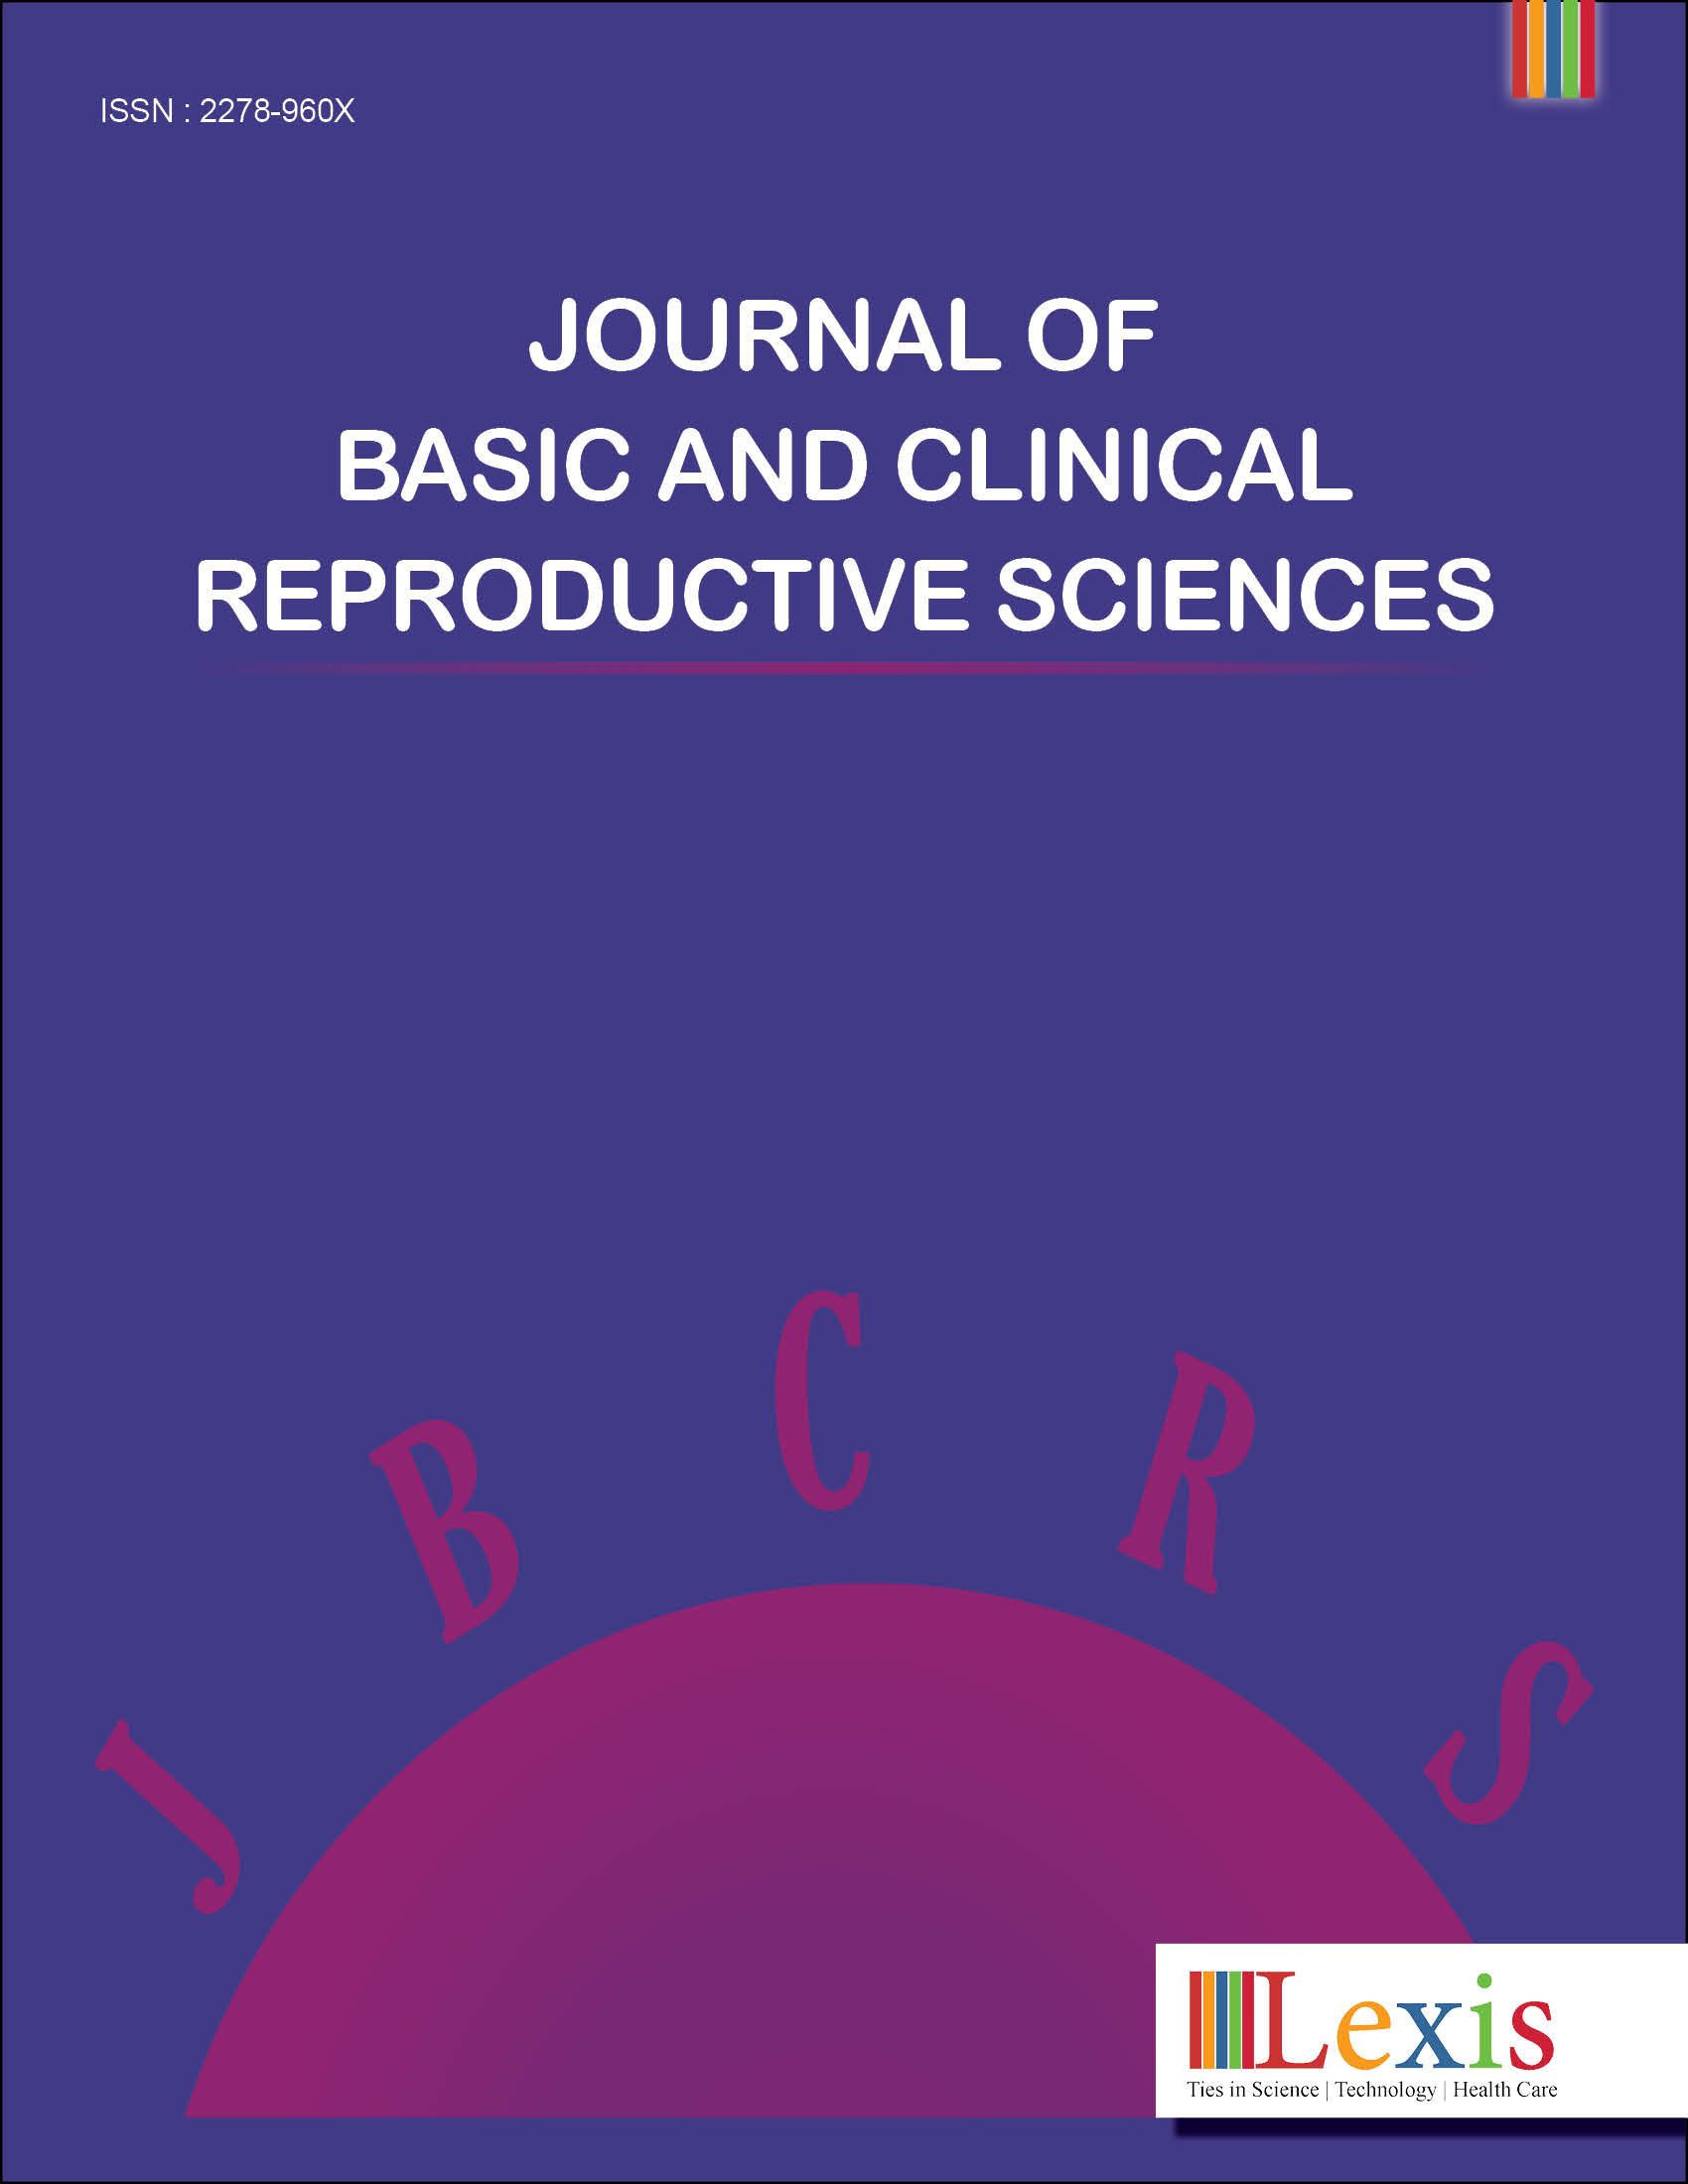 Journal of Basic and Clinical Reproductive Sciences